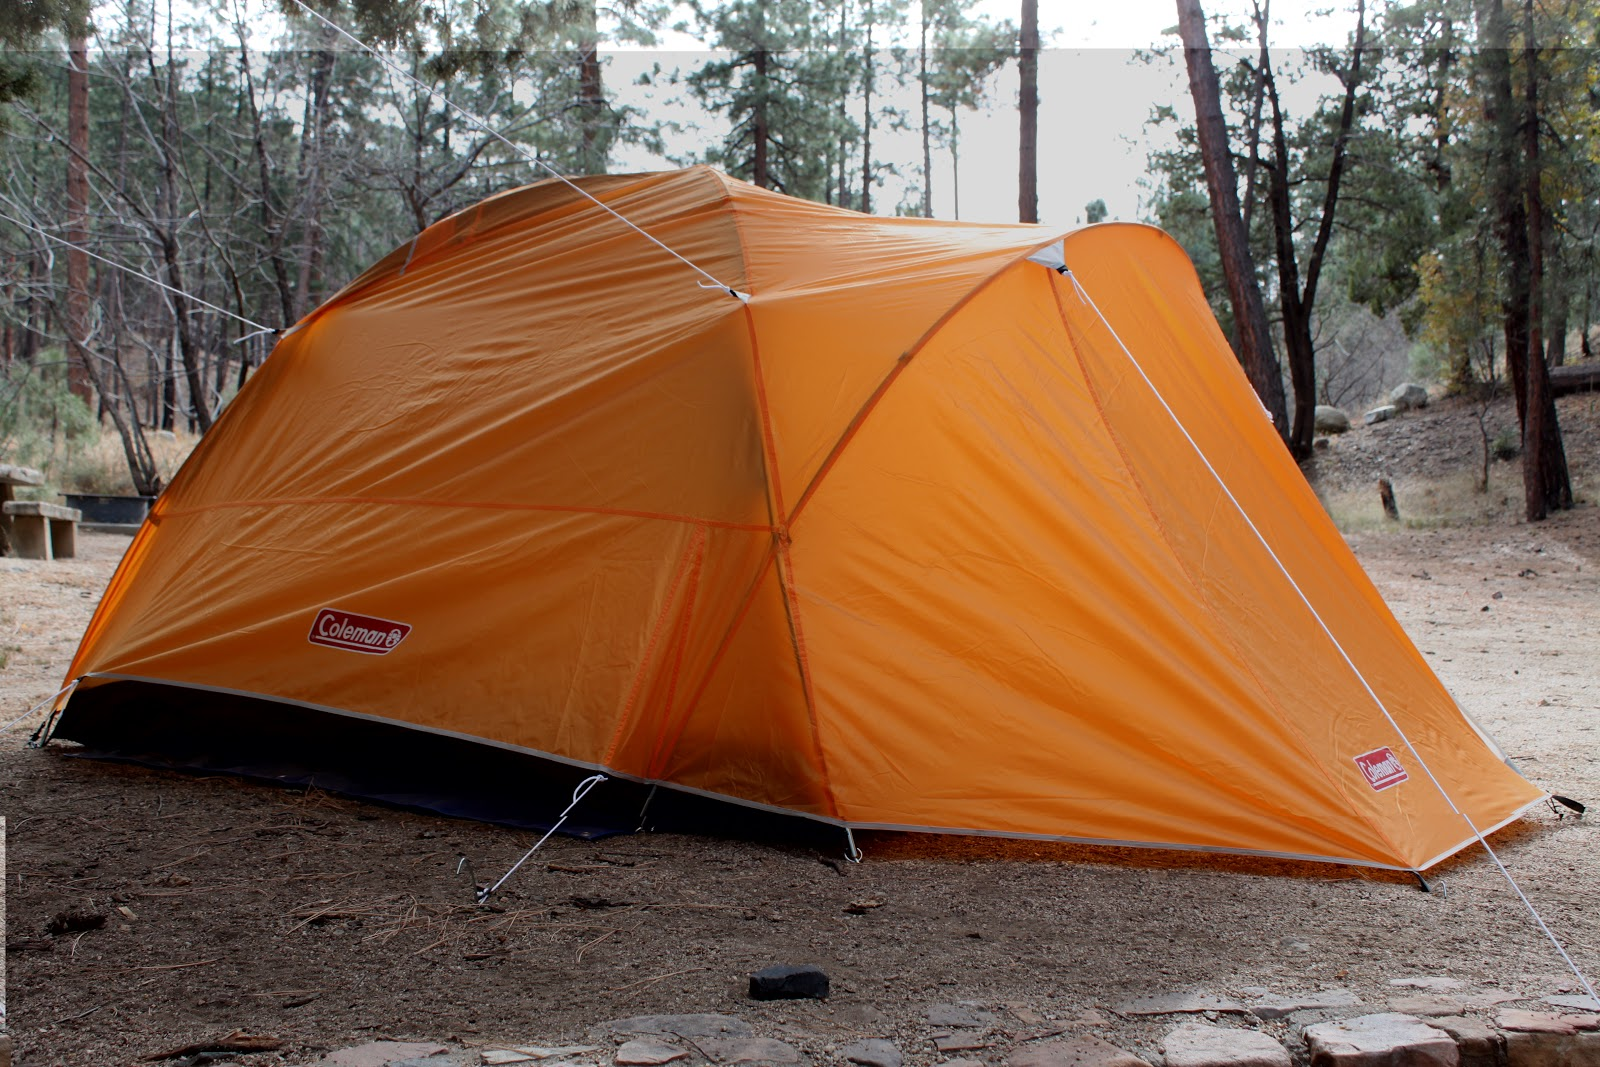 Coleman Hooligan 3 Tent Review & Stereowise Plus: Coleman Hooligan 3 Tent Review